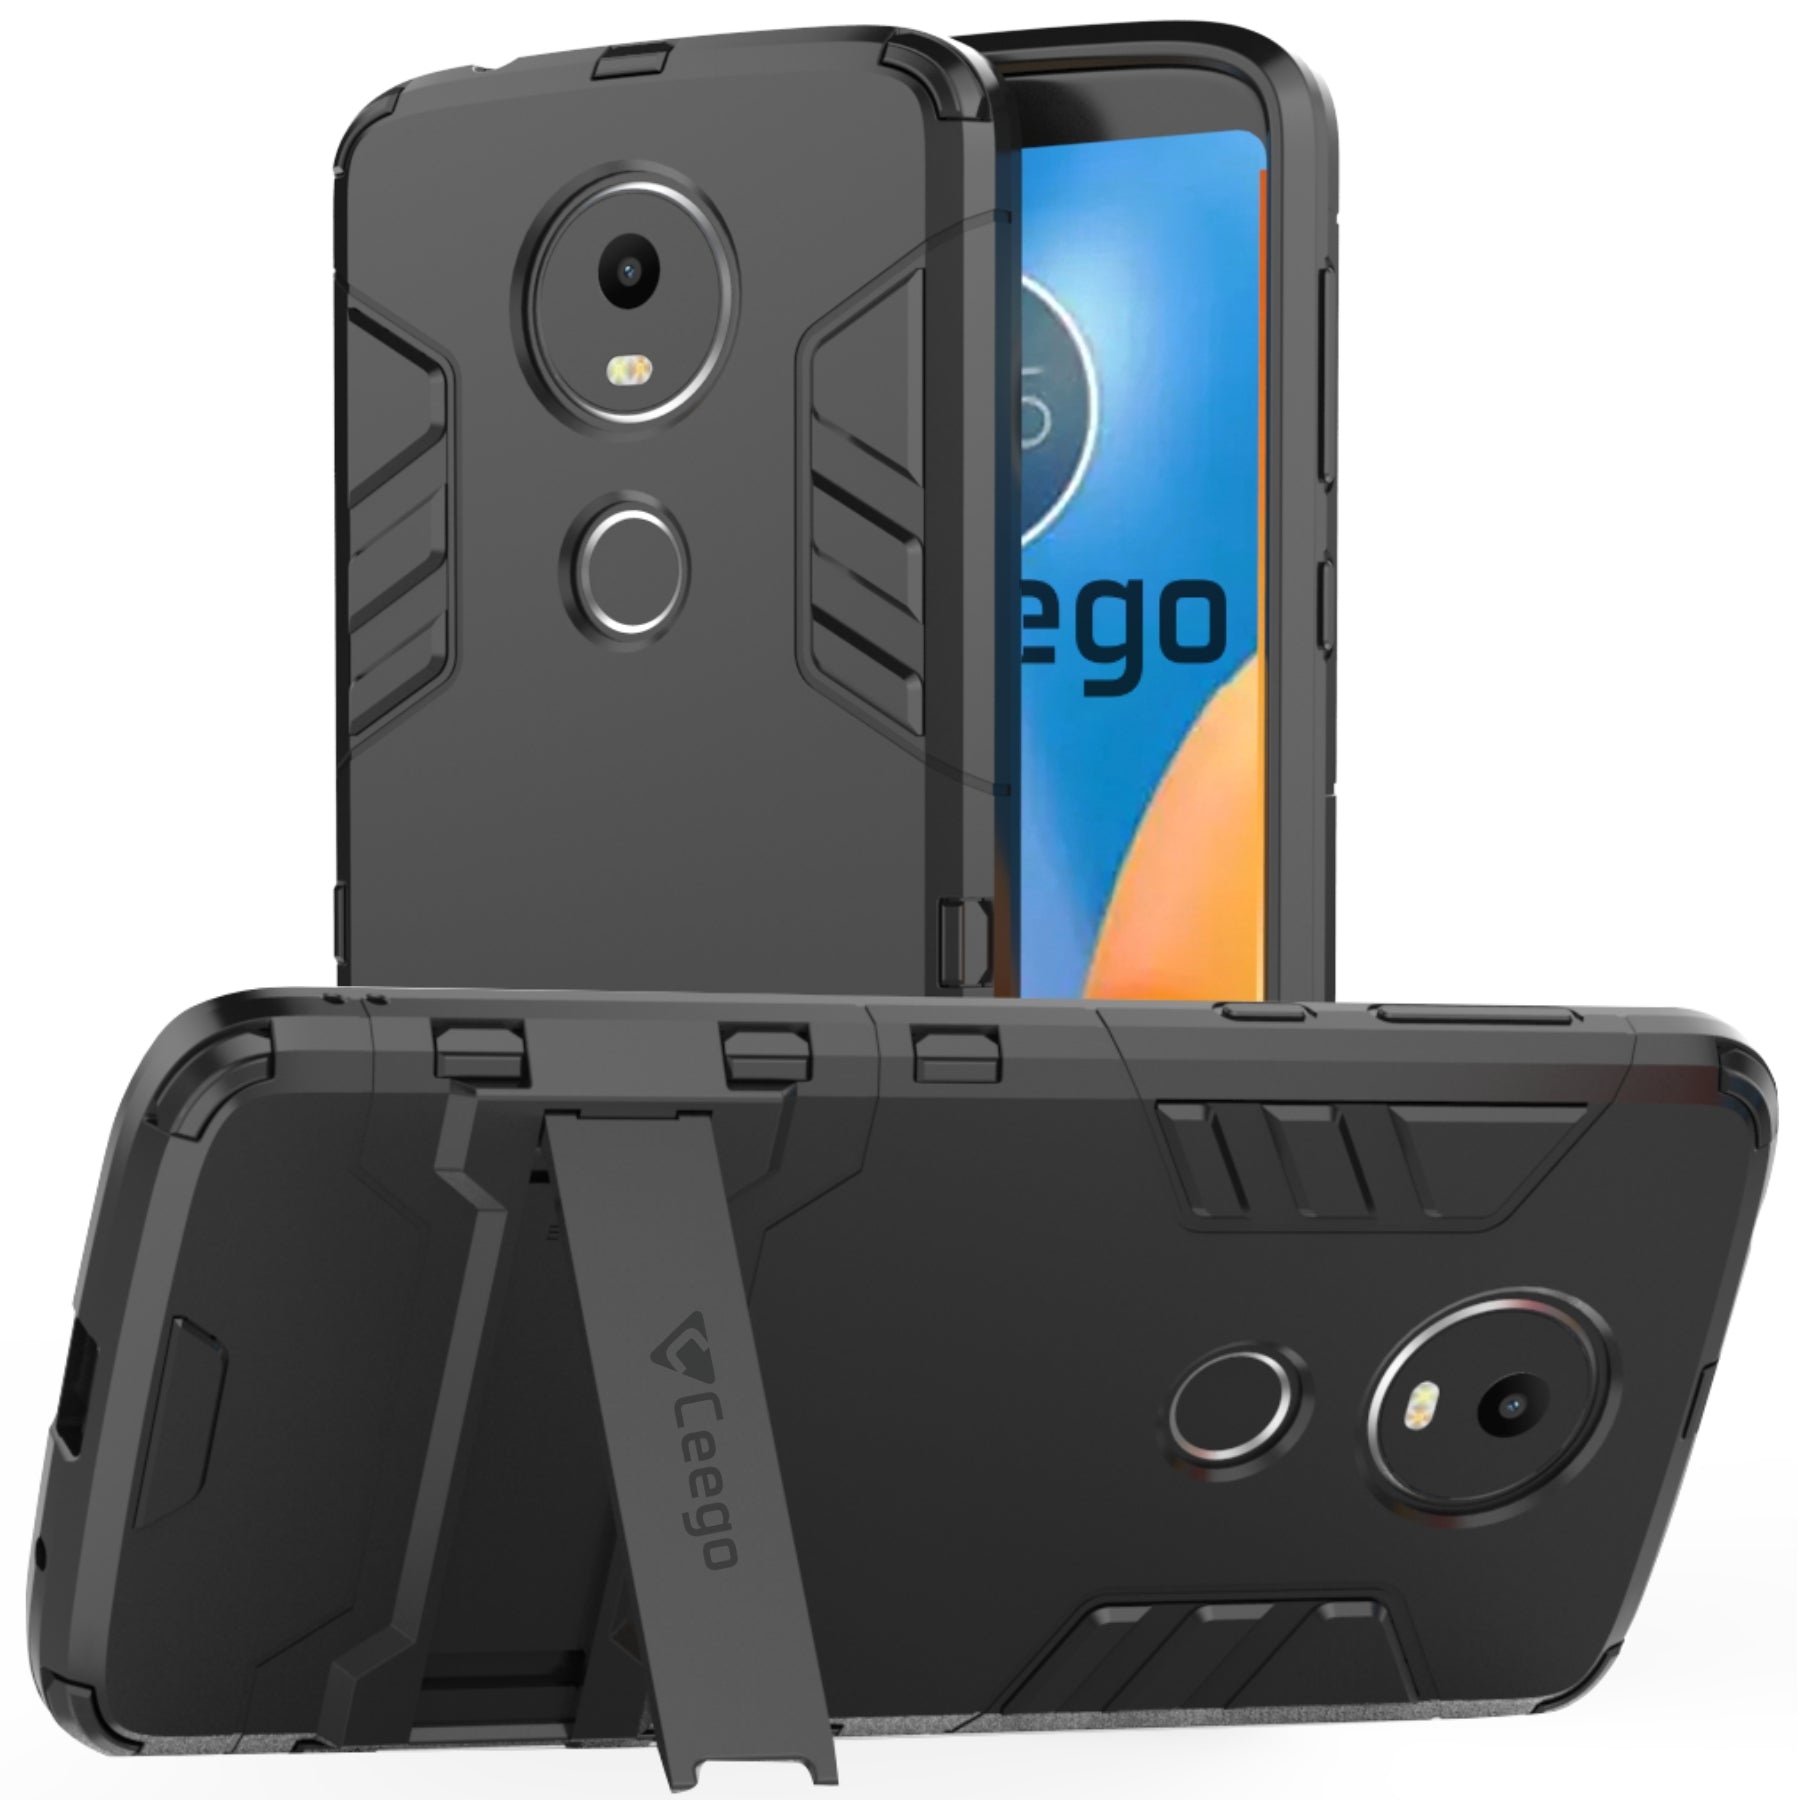 Ceego Stealth Defence Back Case for Moto E5 Plus  – Matte Black